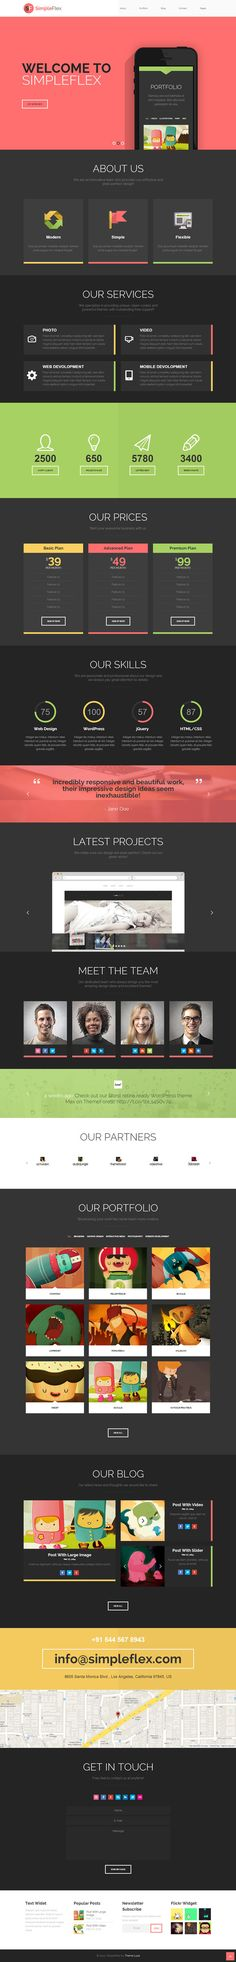 Flat One Page WordPress Theme. Beautiful colors. Great use of design principles. Like the layout and waypoints.